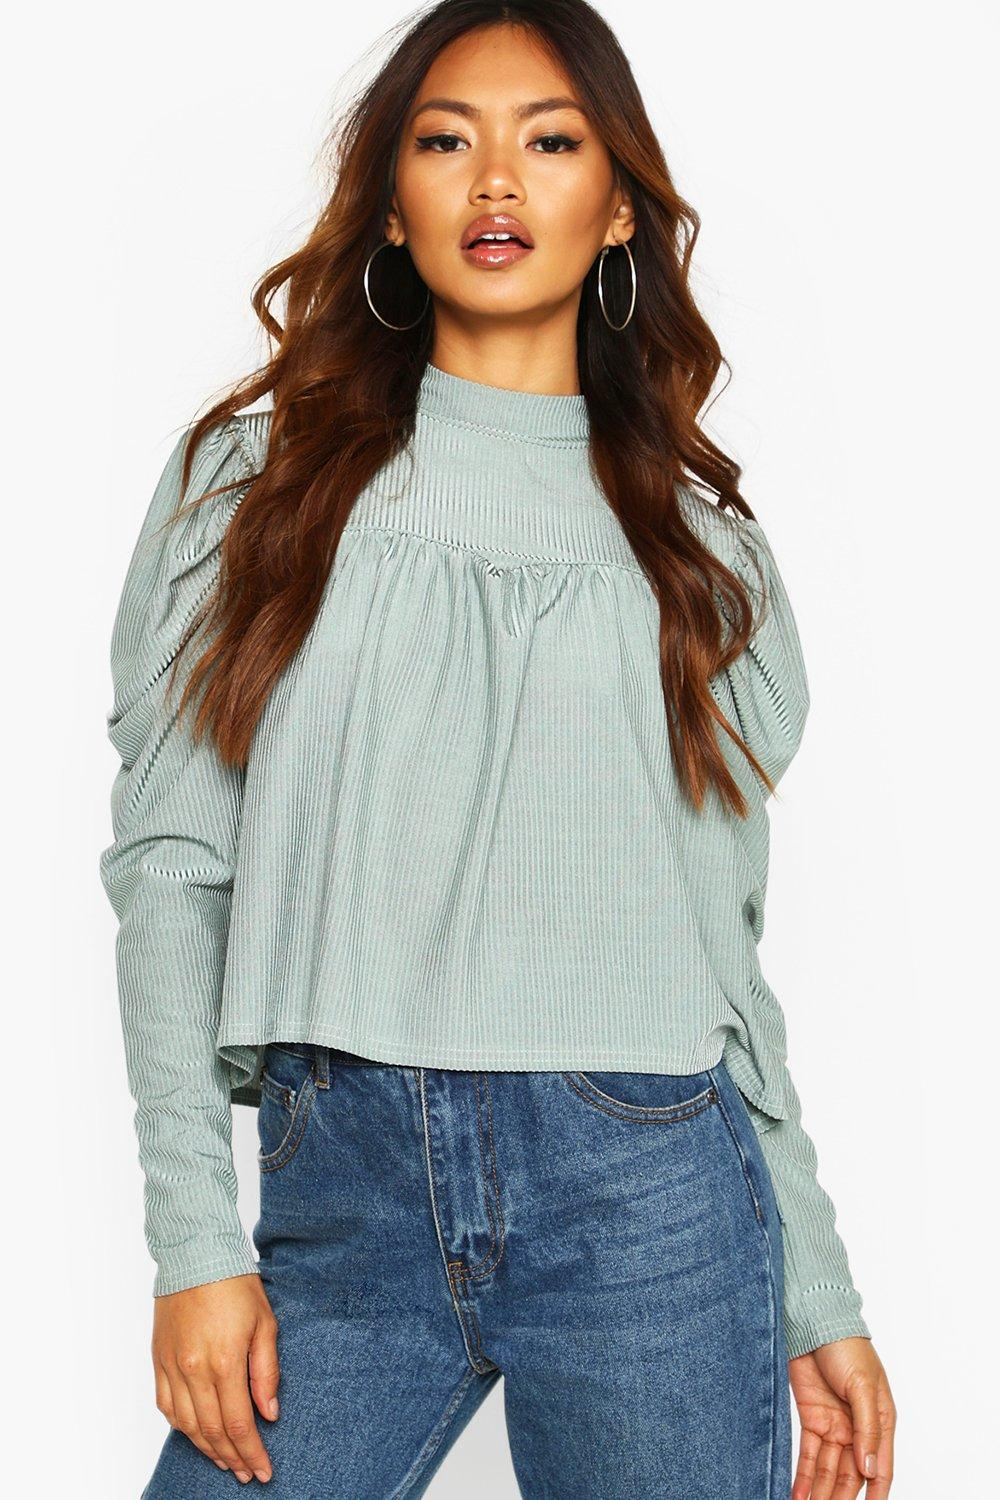 boohoo High Neck Puff Sleeve Smock Top - Duck Egg - 10, Duck Egg